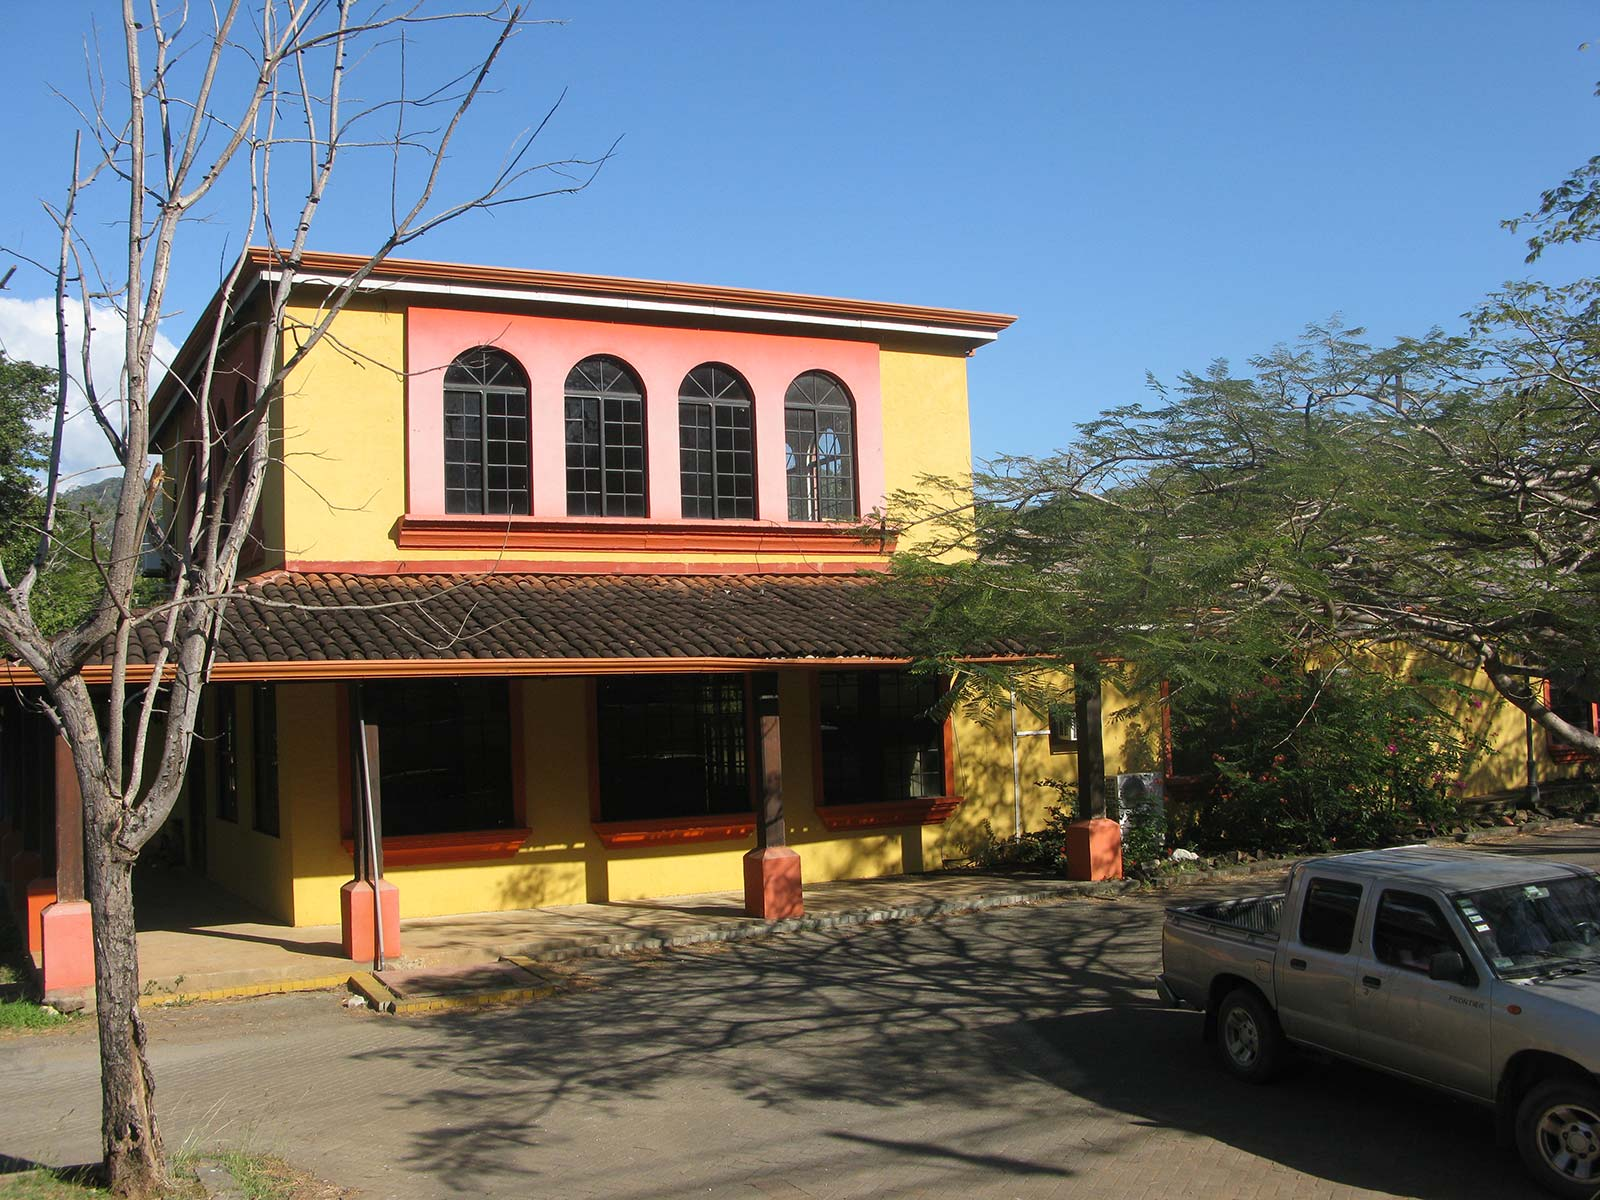 commercial for sale, for sale, investment, income producing, close to everything, north pacific, santa cruz, guanacaste, strategically located commercial